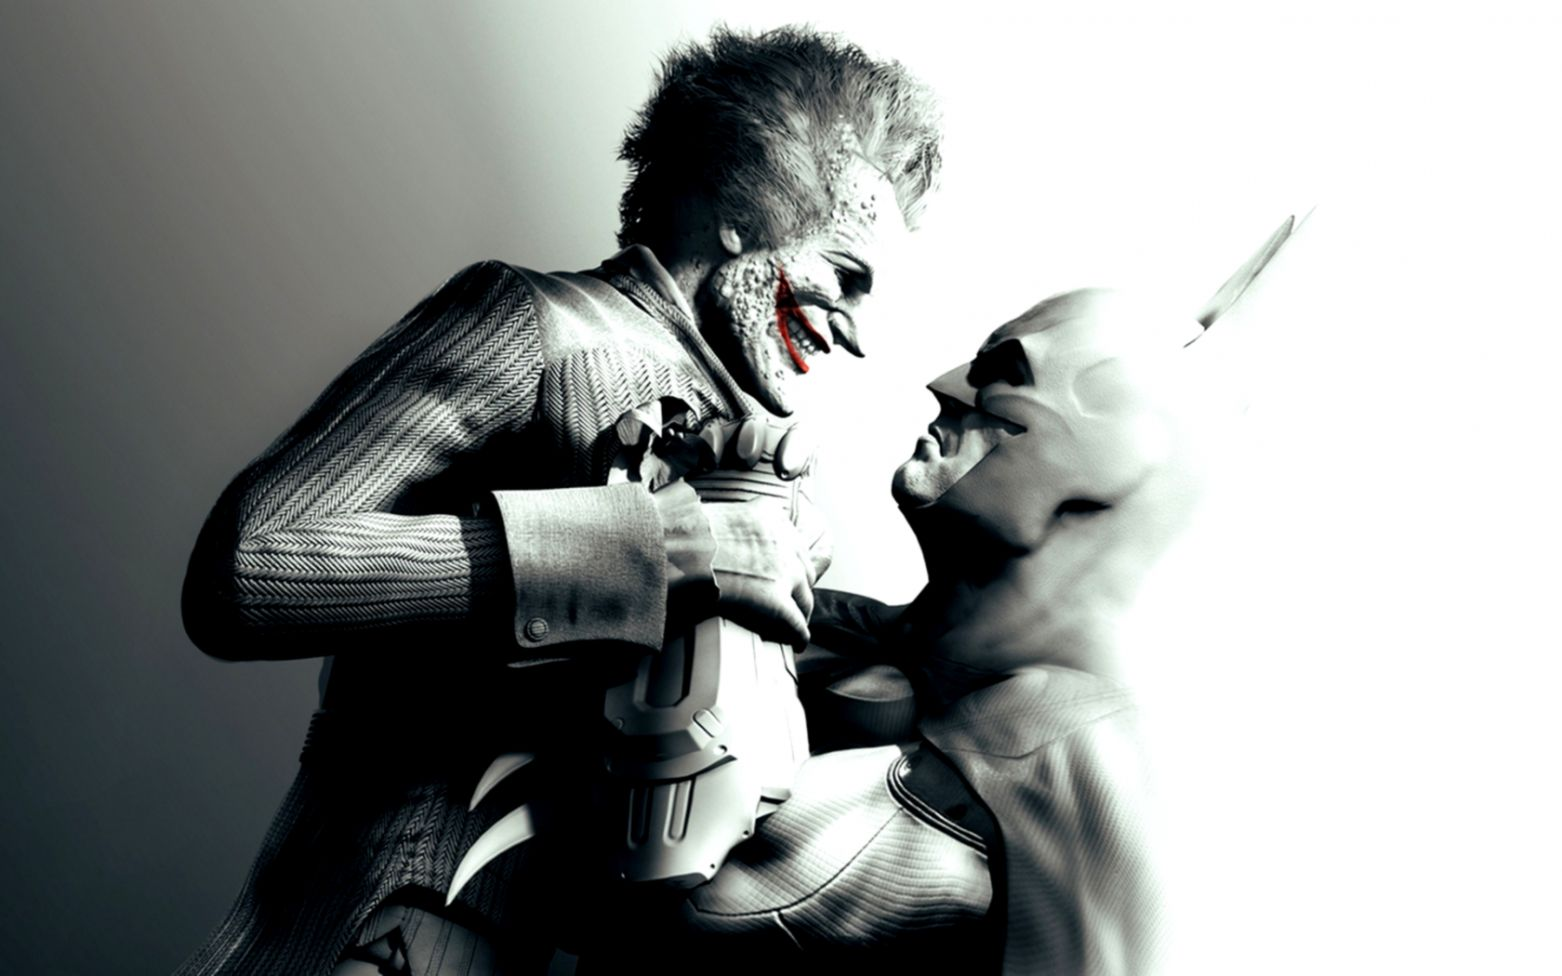 Arkham City Batman Hd Wallpapers Like Wallpapers